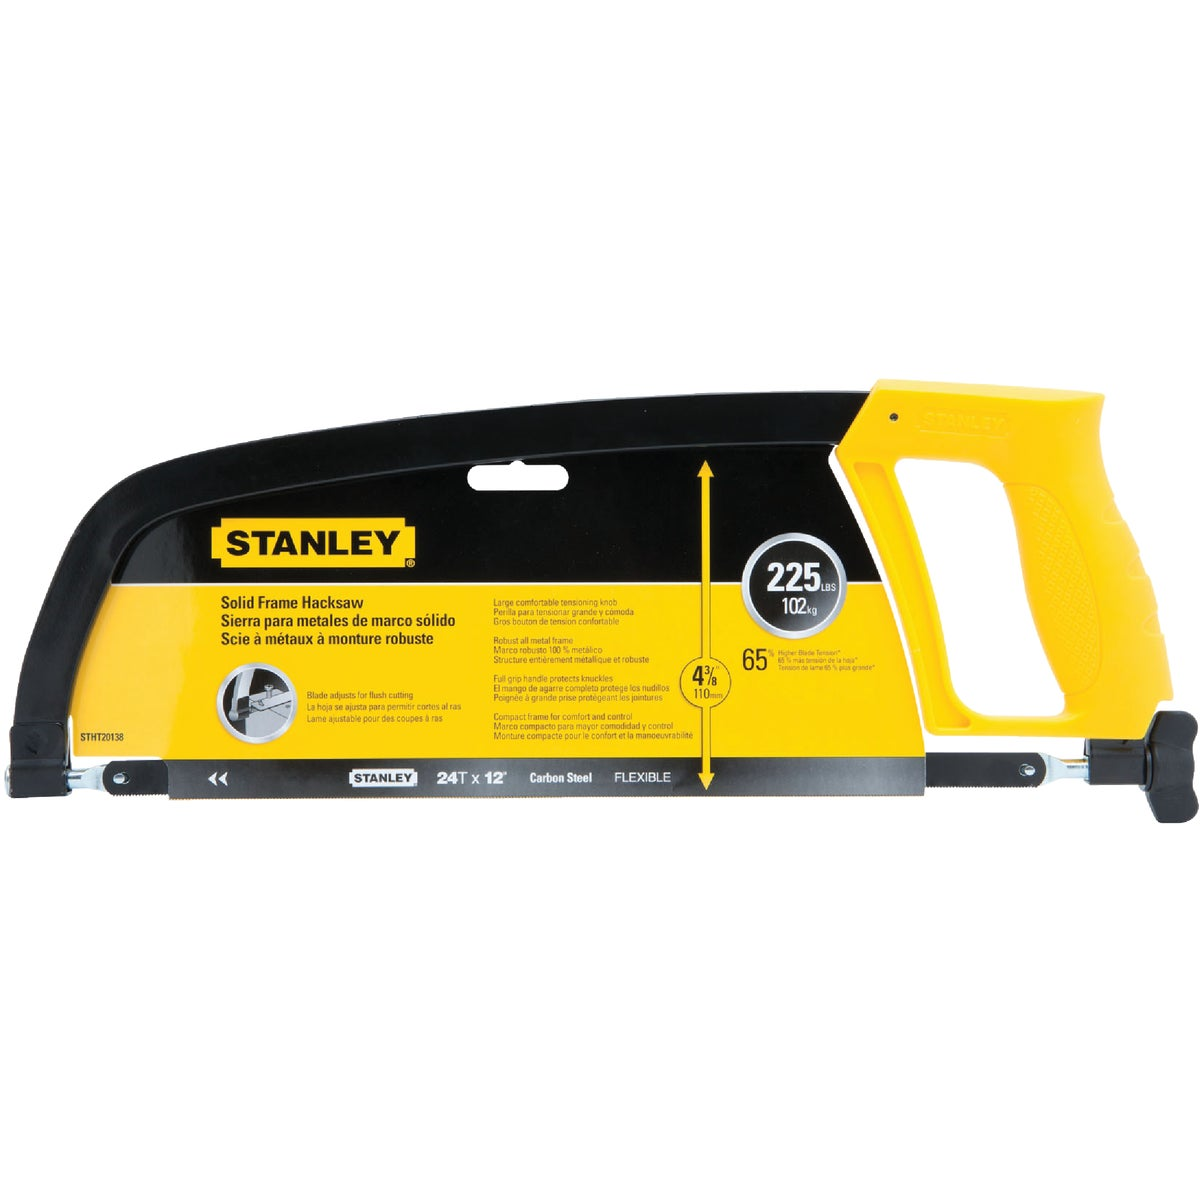 "12"" SOLID FRAME HACKSAW - STHT20138 by Stanley Tools"